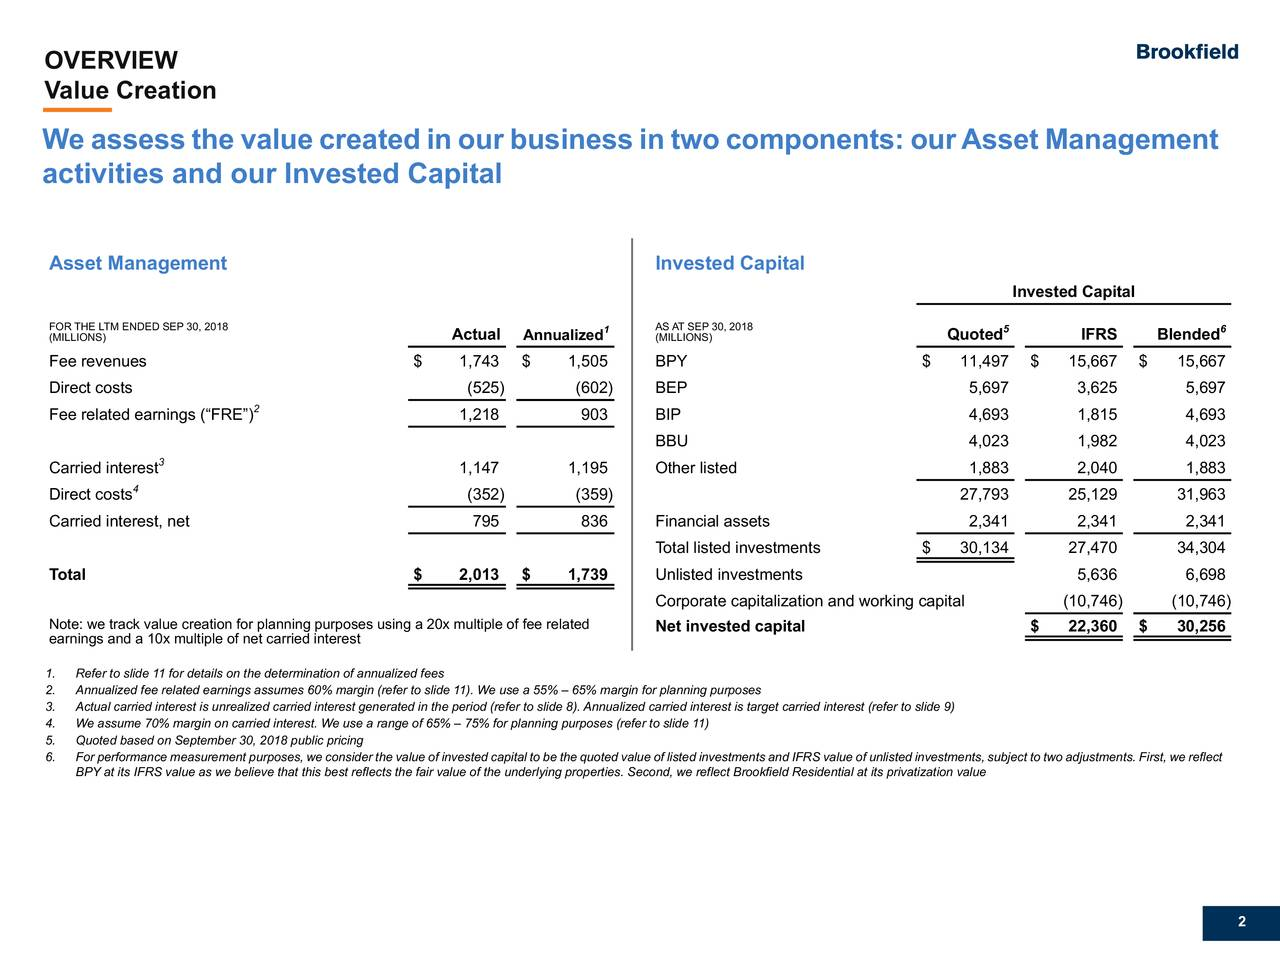 "Value Creation We assess the value created in our business in two components: ourAsset Management activities and our Invested Capital Asset Management Invested Capital Invested Capital FOR THE LTM ENDED SEP 30, 2018 1 AS AT SEP 30, 2018 5 6 (MILLIONS) Actual Annualized (MILLIONS) Quoted IFRS Blended Fee revenues $ 1,743 $ 1,505 BPY $ 11,497 $ 15,667 $ 15,667 Direct costs (525) (602 ) BEP 5,697 3,625 5,697 Fee related earnings (""FRE"")2 1,218 903 BIP 4,693 1,815 4,693 BBU 4,023 1,982 4,023 3 Carried interest 1,147 1,195 Other listed 1,883 2,040 1,883 Direct costs (352) (359 ) 27,793 25,129 31,963 Carried interest, net 795 836 Financial assets 2,341 2,341 2,341 Total listed investments $ 30,134 27,470 34,304 Total $ 2,013 $ 1,739 Unlisted investments 5,636 6,698 Corporate capitalization and working capital (10,746) (10,746) Note: we track value creation for planning purposes using a 20x multiple of fee reNet invested capital $ 22,360 $ 30,256 earnings and a 10x multiple of net carried interest 1. Refer to slide 11 for details on the determination of annualized fees 2. Annualized fee related earnings assumes 60% margin (refer to slide 11). We use a 55% – 65% margin for planning purposes 3. Actual carried interest is unrealized carried interest generated in the period (refer to slide 8). Annualized carried interest is target carried interest (refer to slide 9) 4. We assume 70% margin on carried interest. We use a range of 65% – 75% for planning purposes (refer to slide 11) 5. Quoted based on September 30, 2018 public pricing 6. For performance measurement purposes, we consider the value of invested capital to be the quoted value of listed investments and IFRS value of unlisted investments, subject to two adjustments. First, we reflect BPY at its IFRS value as we believe that this best reflects the fair value of the underlying properties. Second, we reflect Brookfield Residential at its privatization value 2"